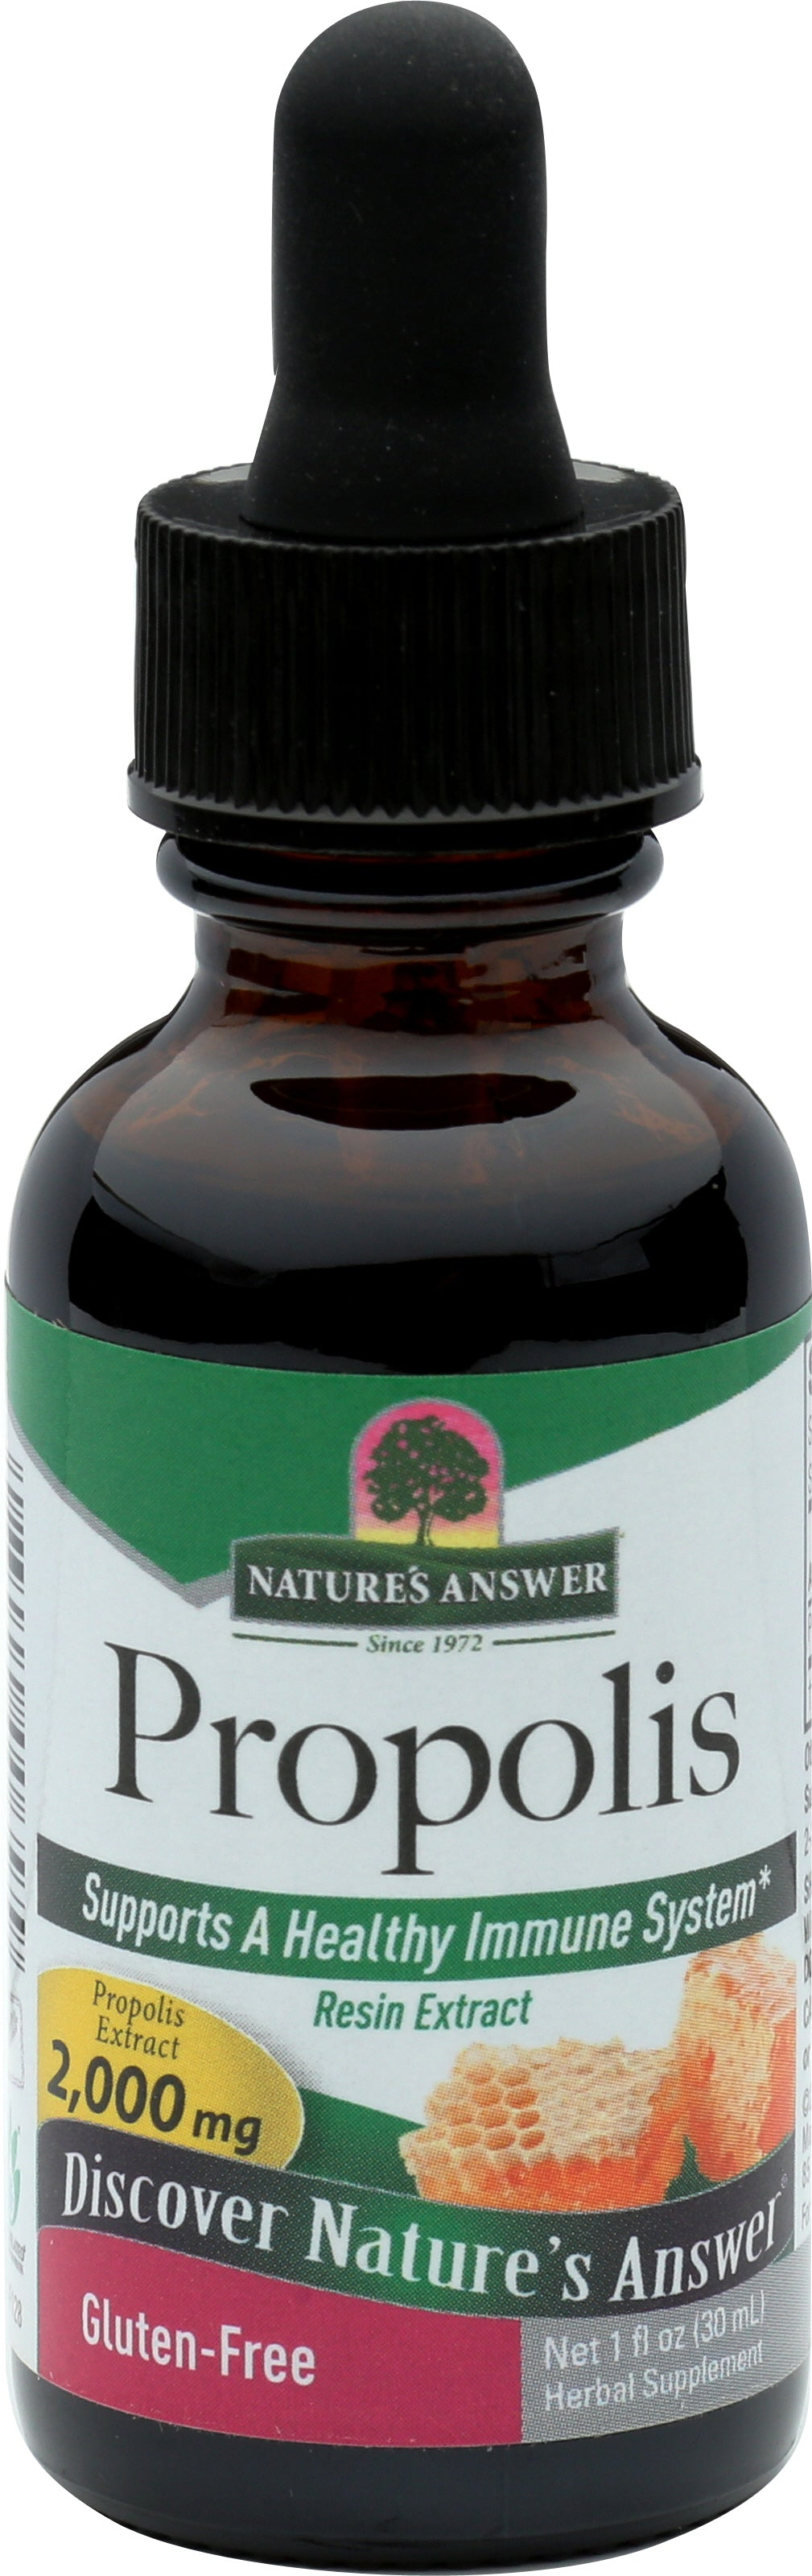 Nature's Answer Propolis Extract, 1 Fl Oz